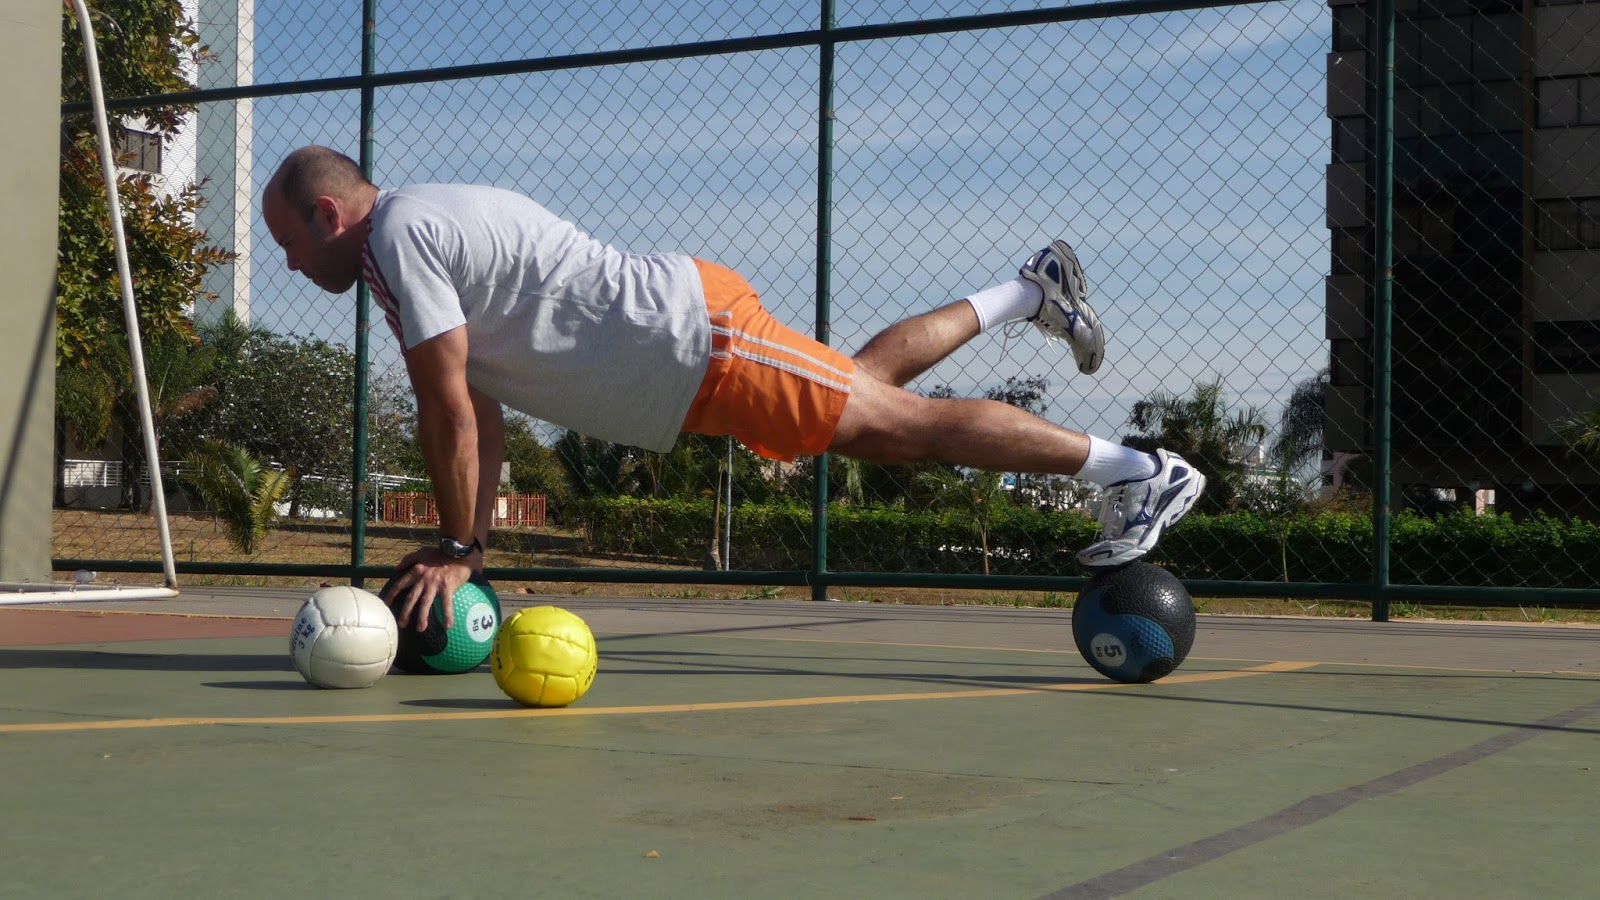 http://upload.wikimedia.org/wikipedia/commons/8/8b/Plank_on_a_pair_of_medicine_balls.jpg